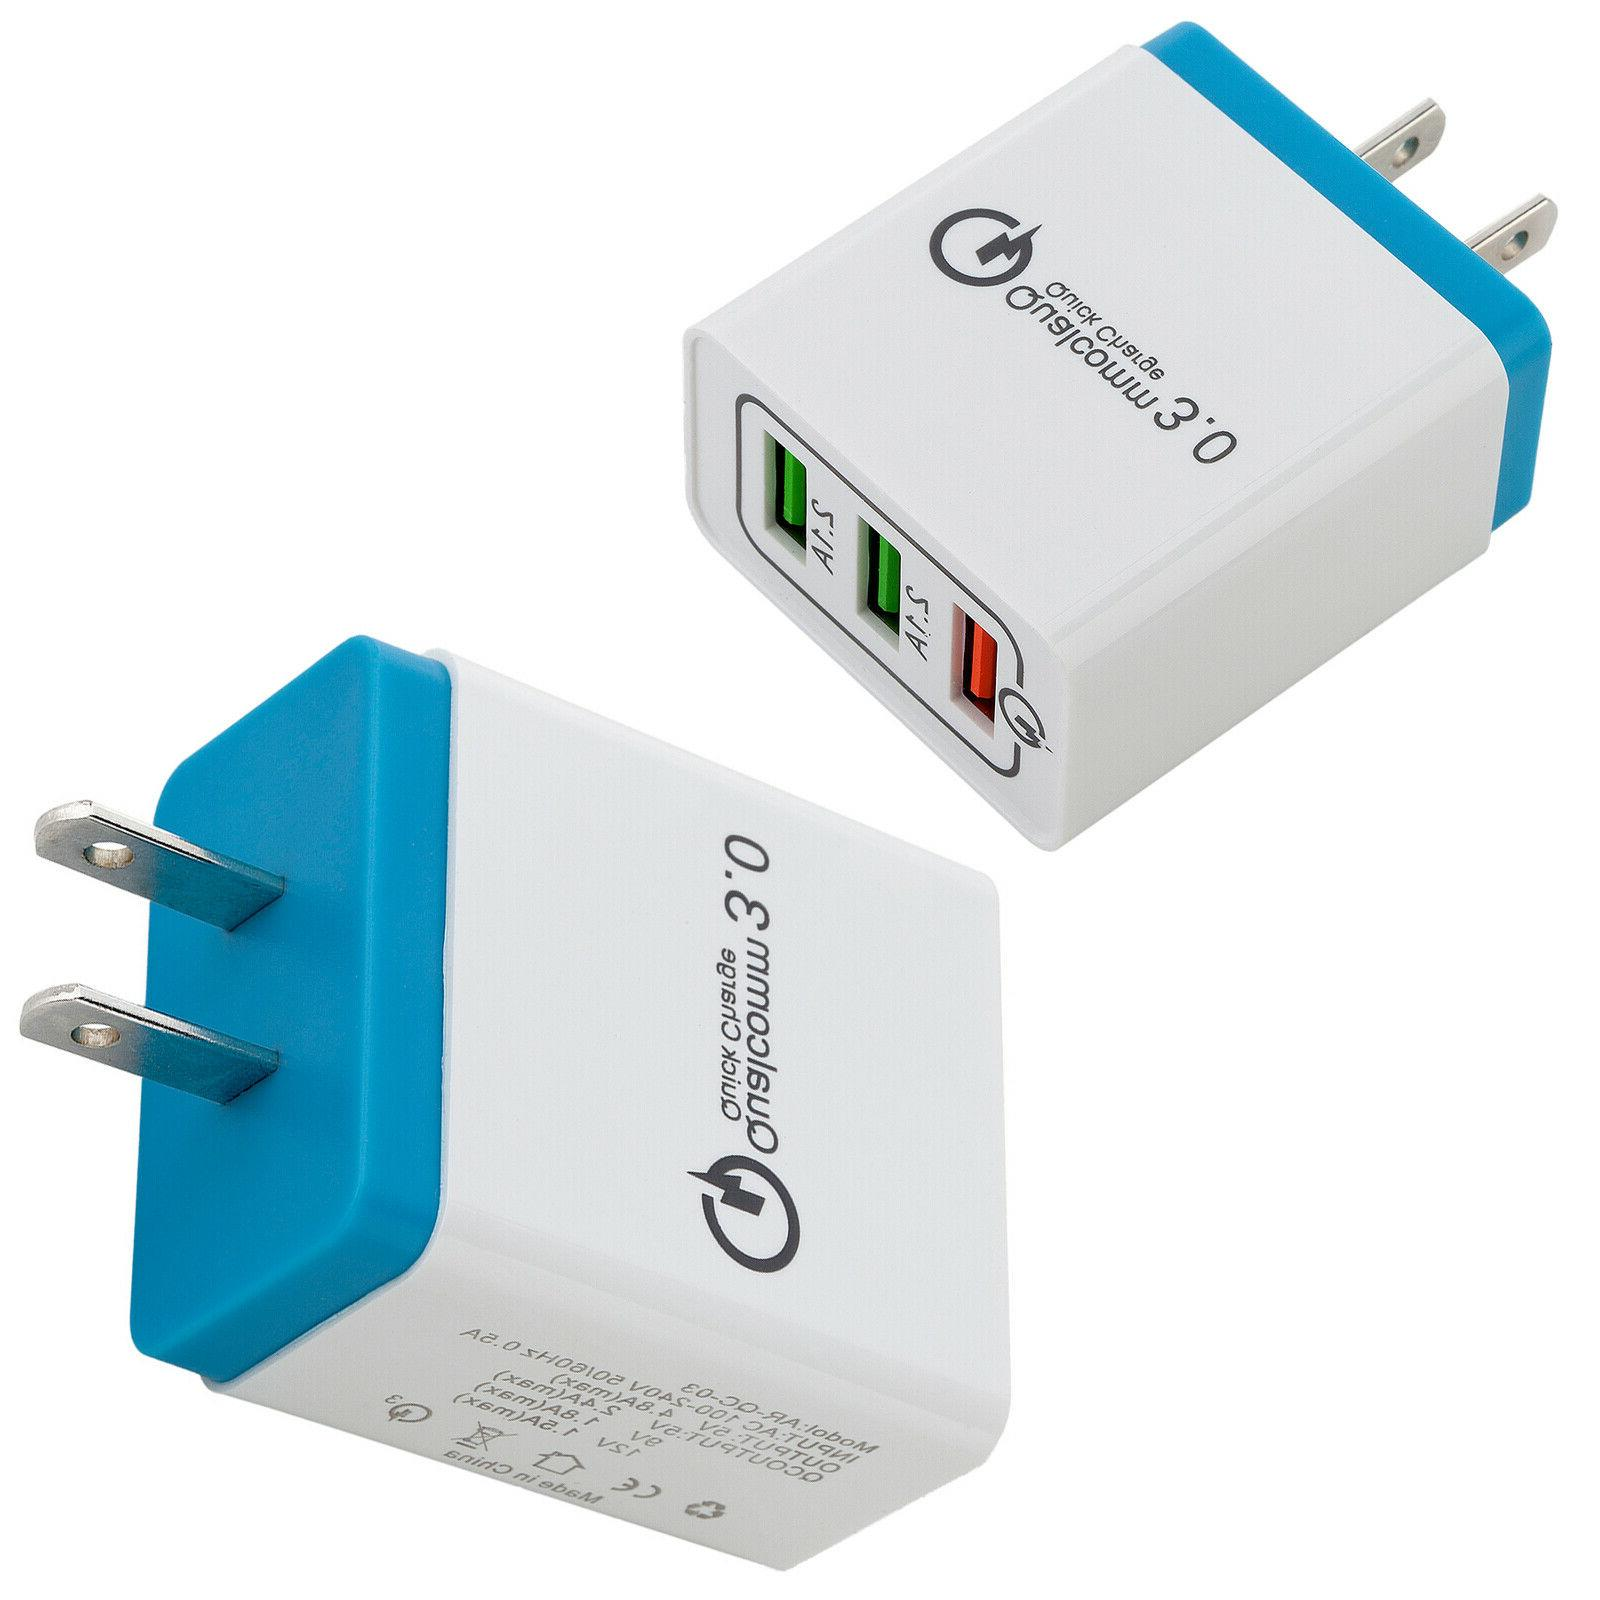 30W Charge QC Charger Adapter US For iPhone/Samsung